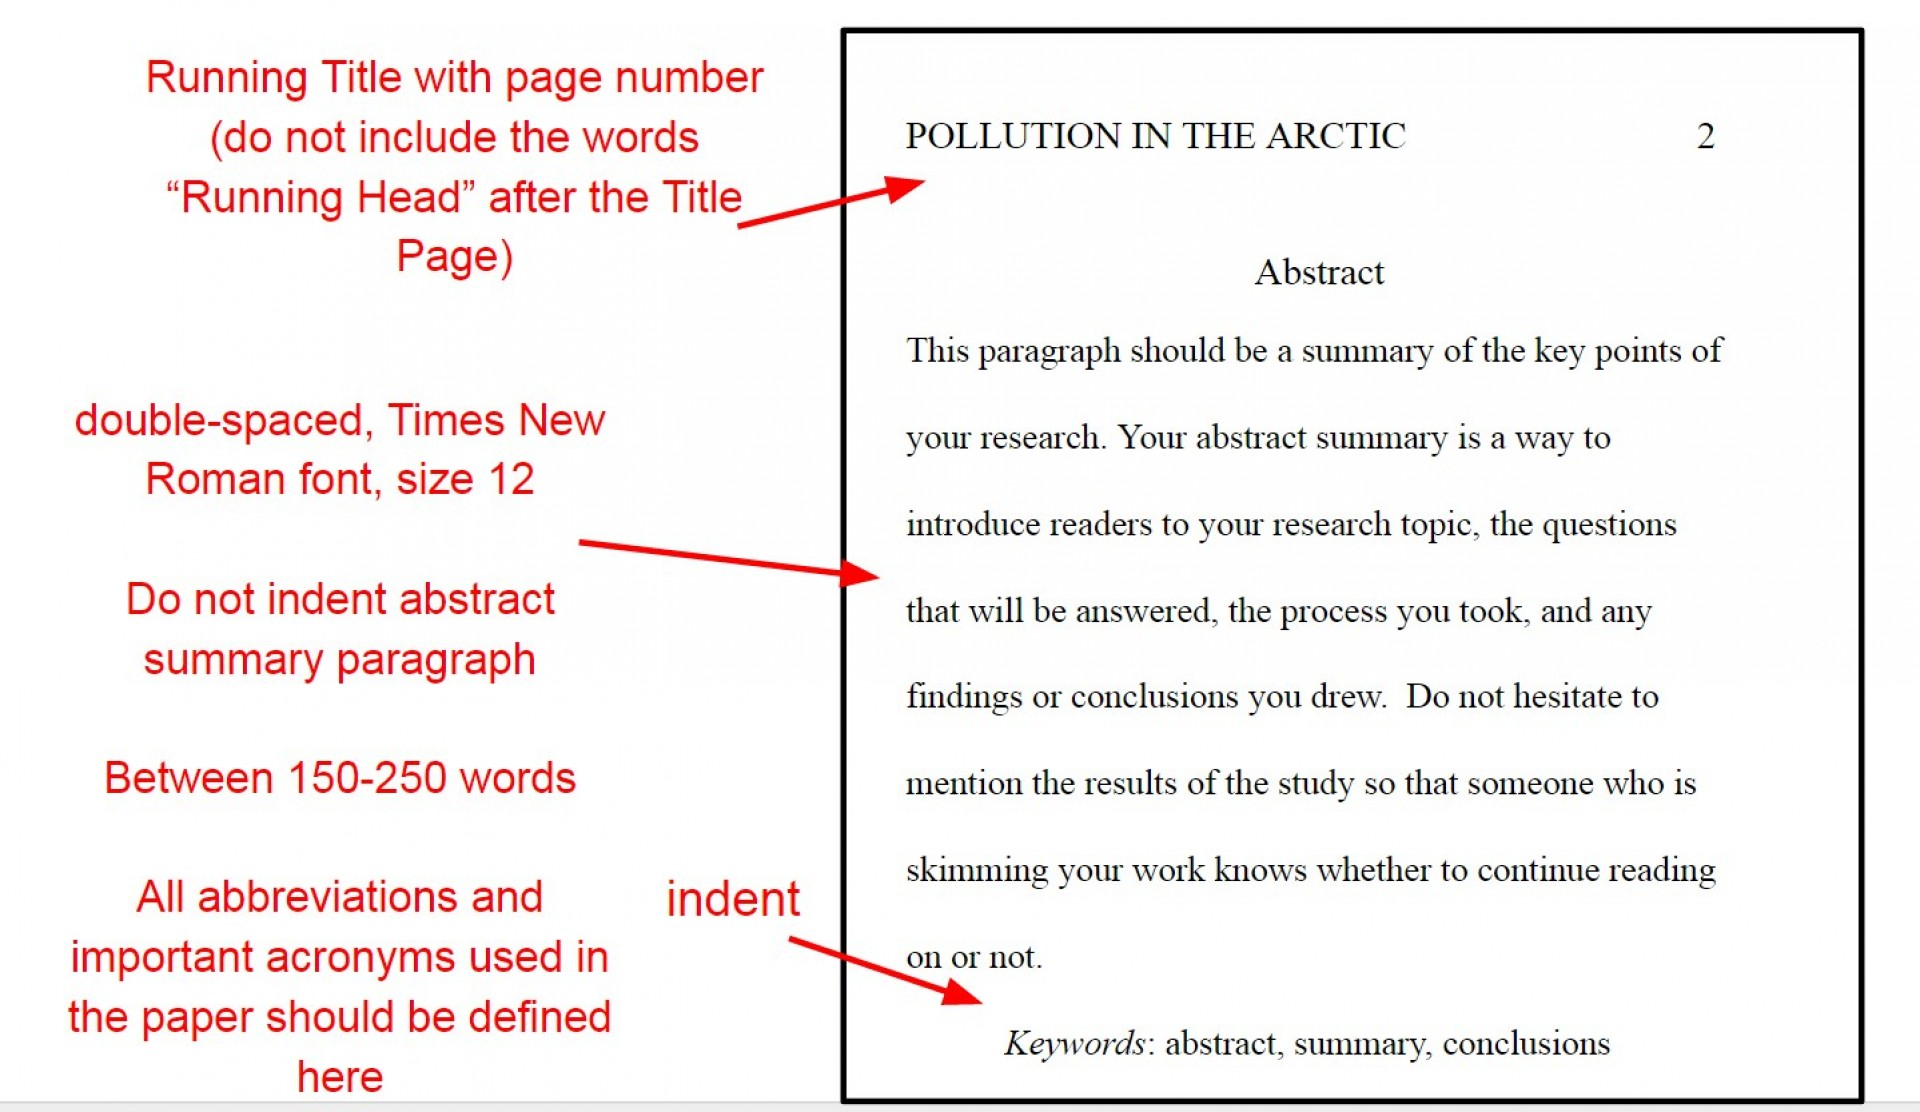 004 Abstract In Research Paper Apa Rare For Style Sample Without 1920